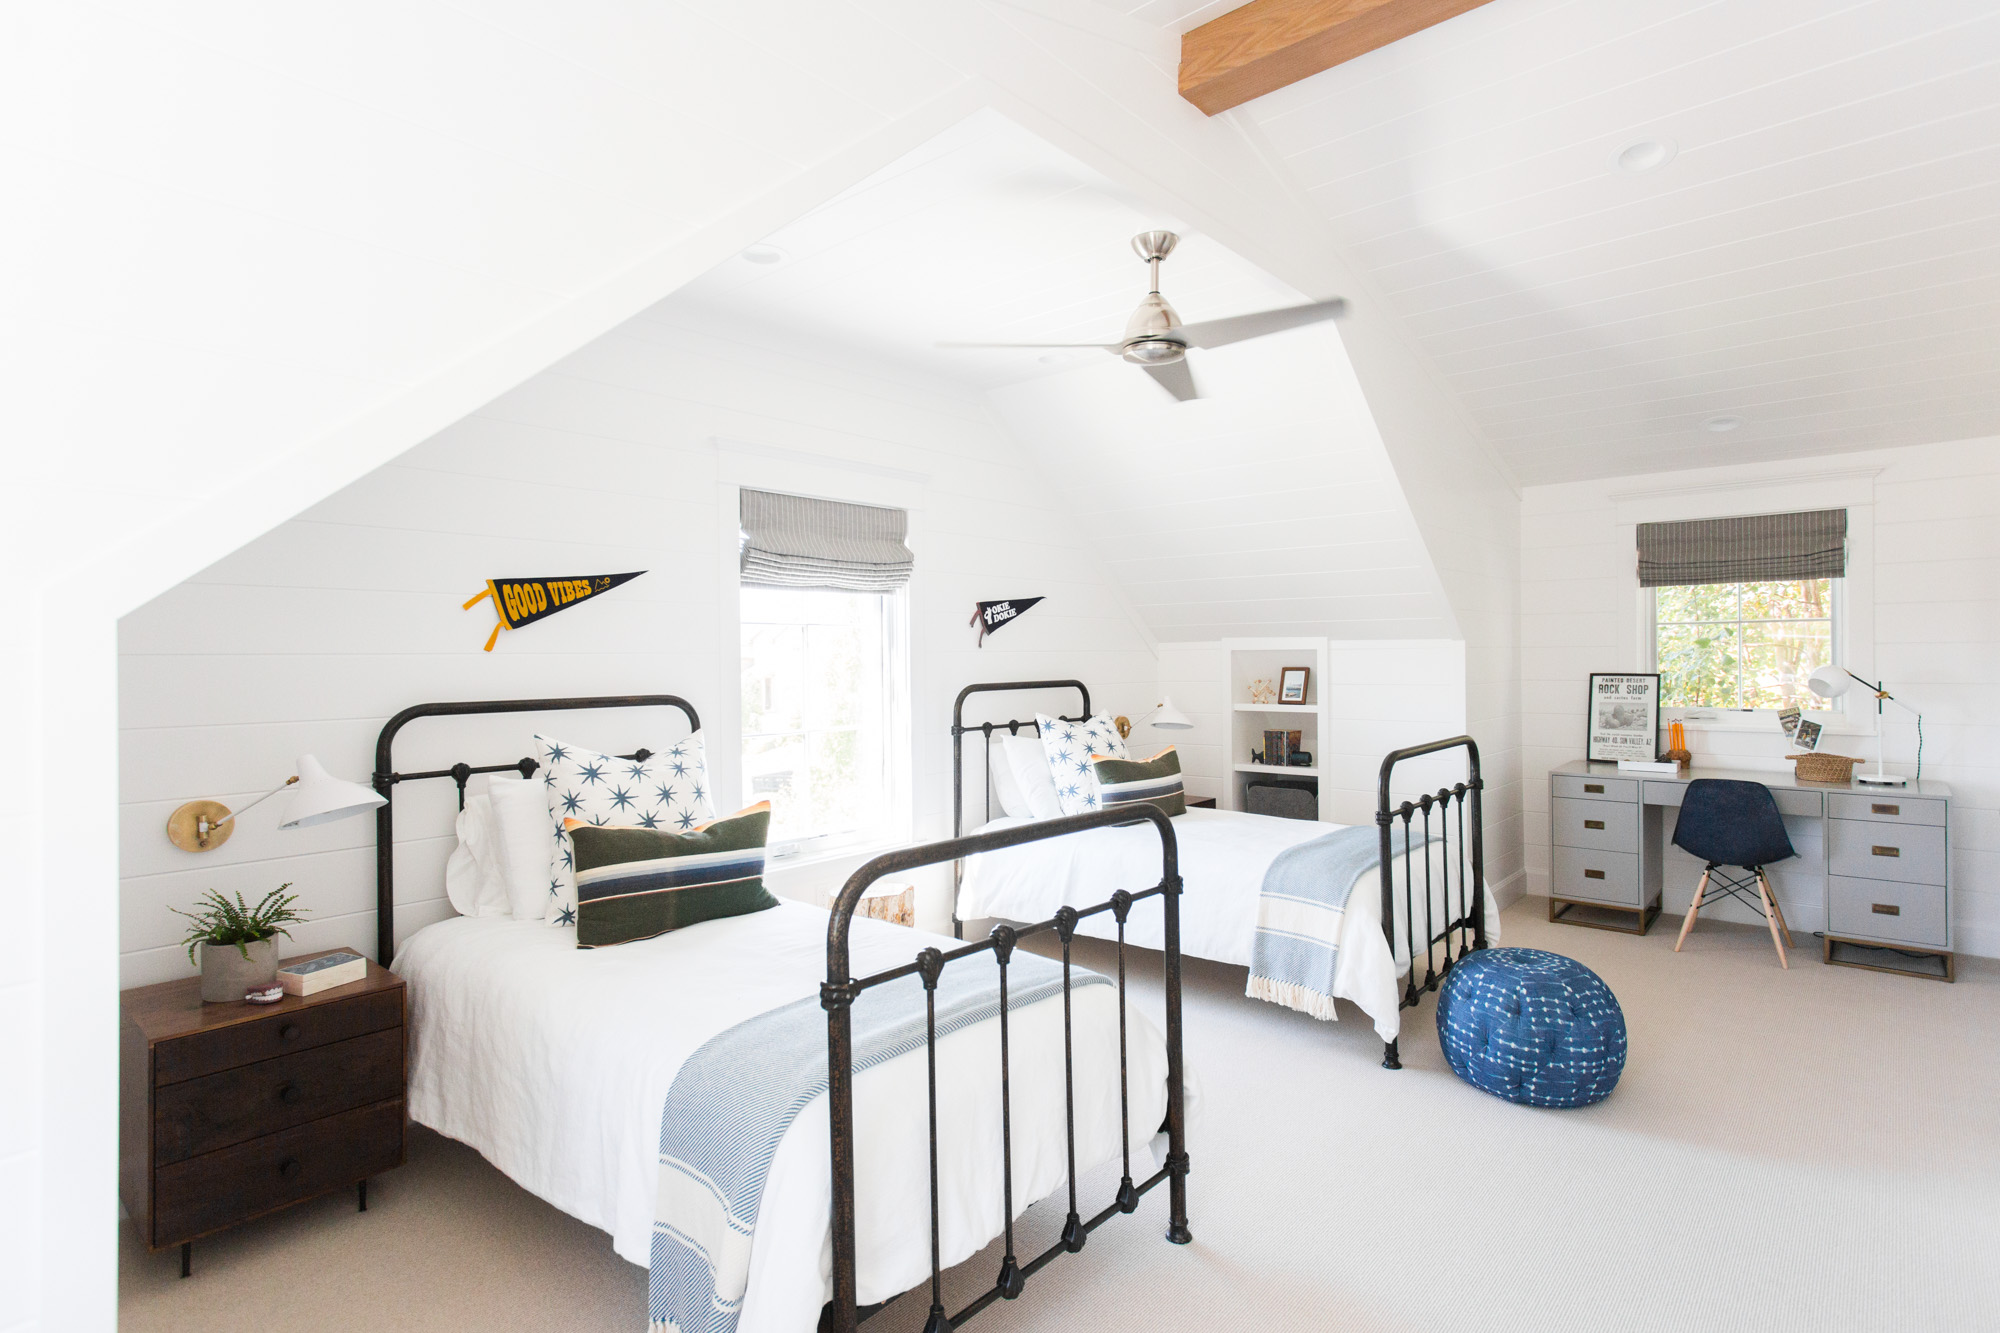 Boys' room with twin beds and shiplap || Studio McGee